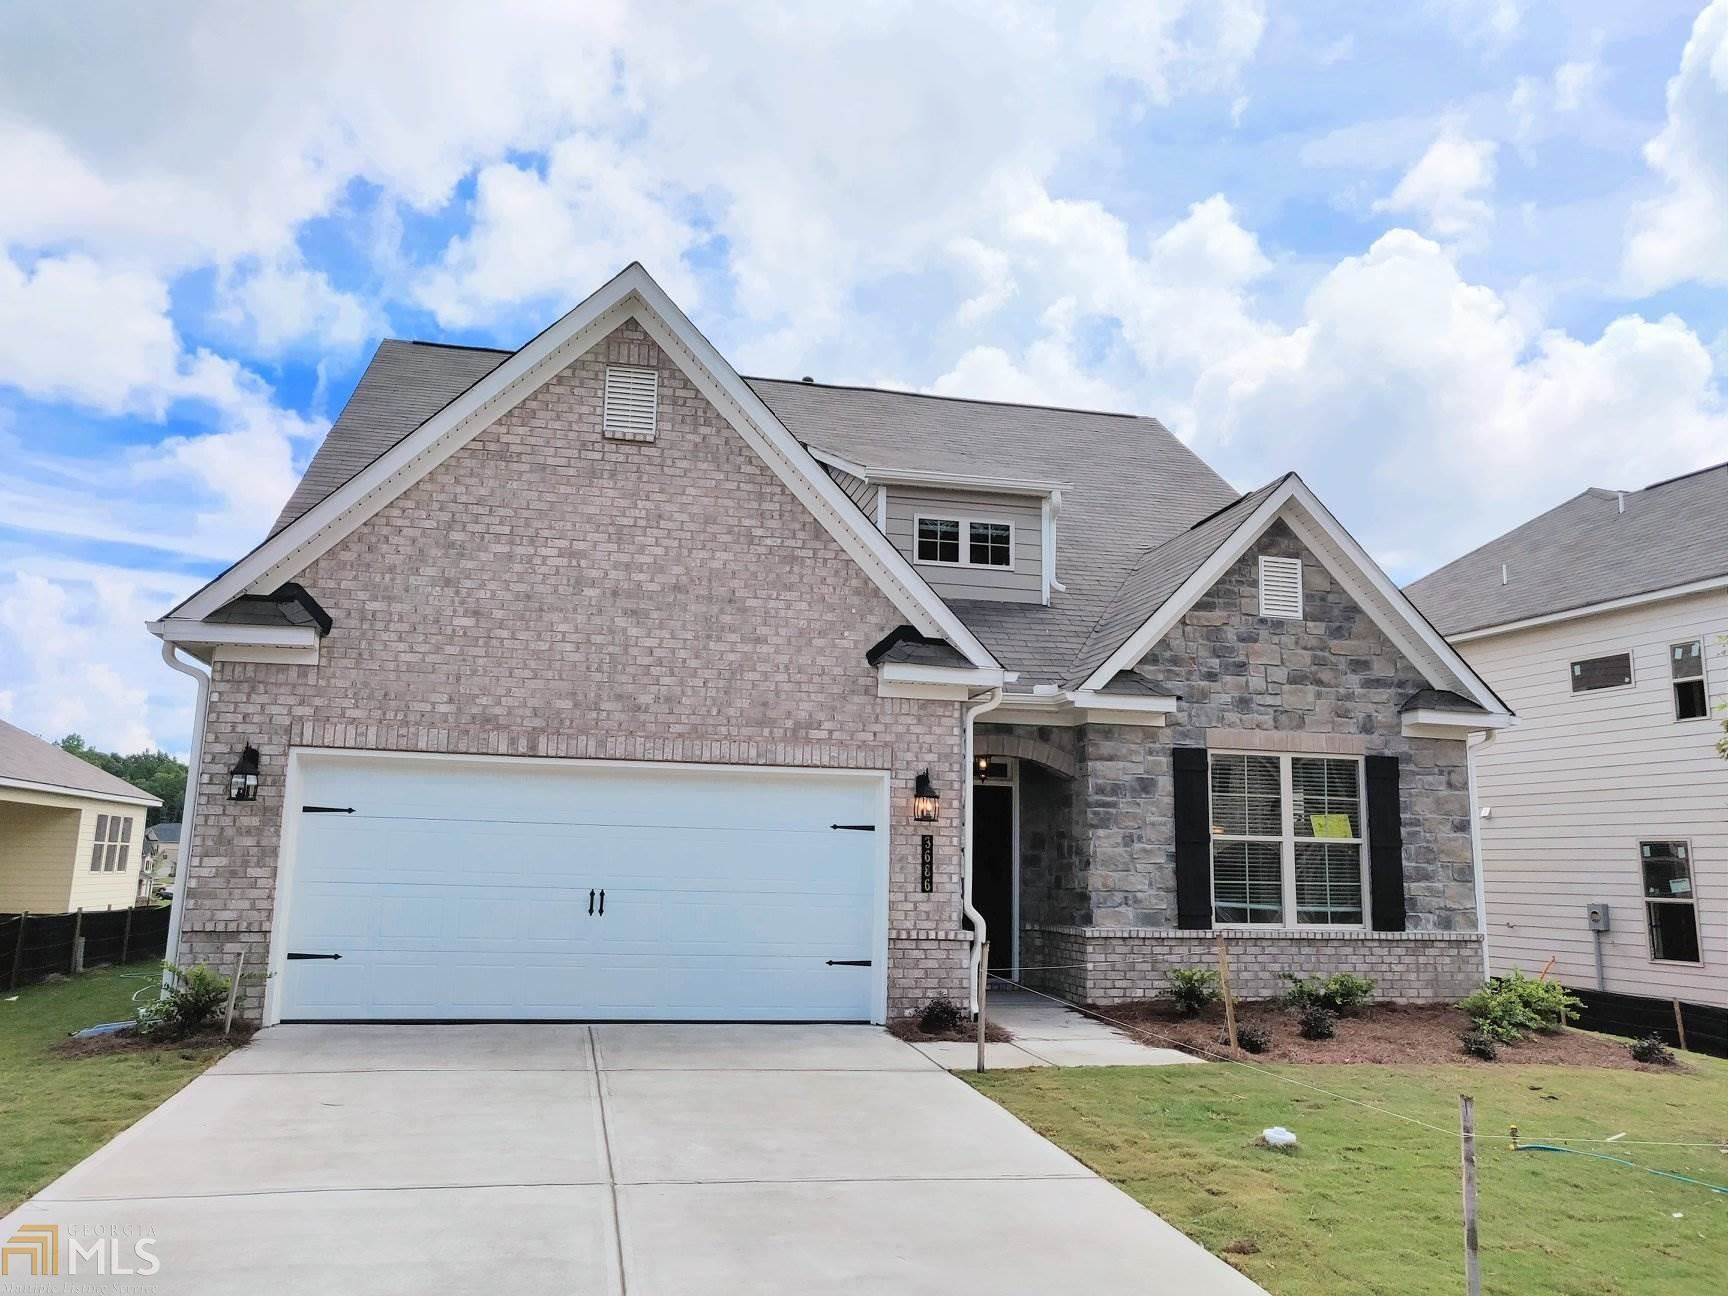 3267 Over Hill Ct, Buford, GA 30519 - MLS#: 8870572